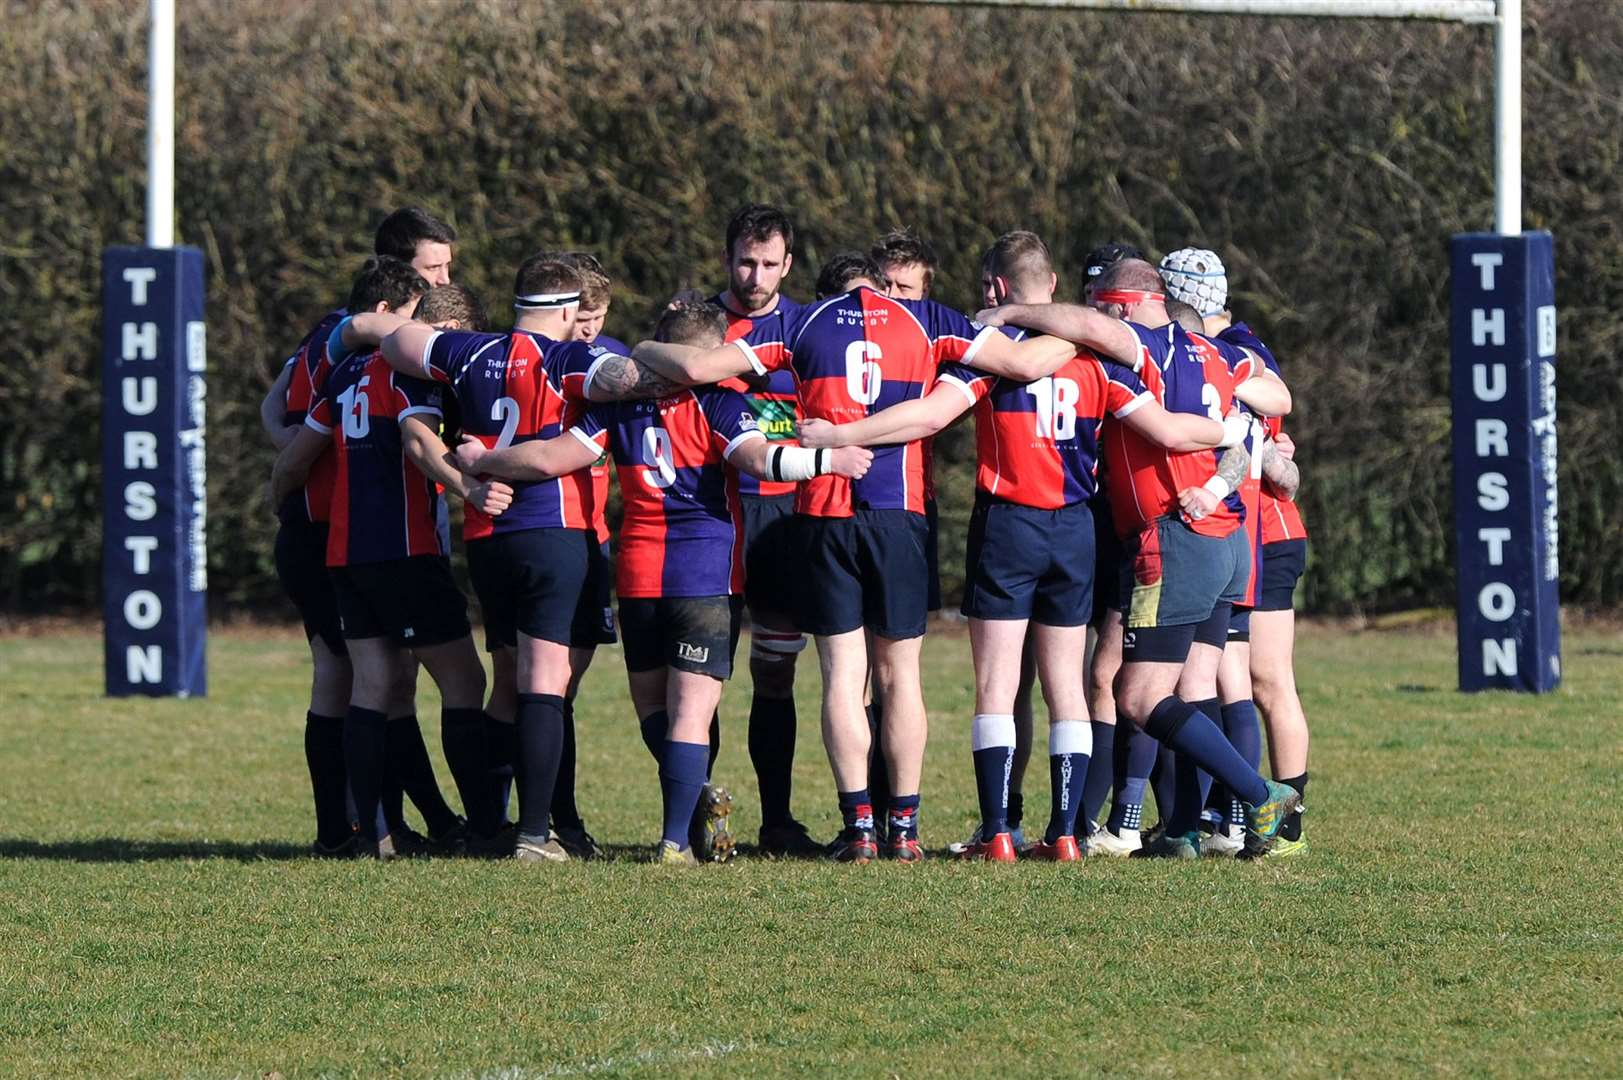 RUGBY - Thurston v Clacton in Suffolk Chadacre Cup semi-final..Pictured: ...PICTURE: Mecha Morton... (7754643)